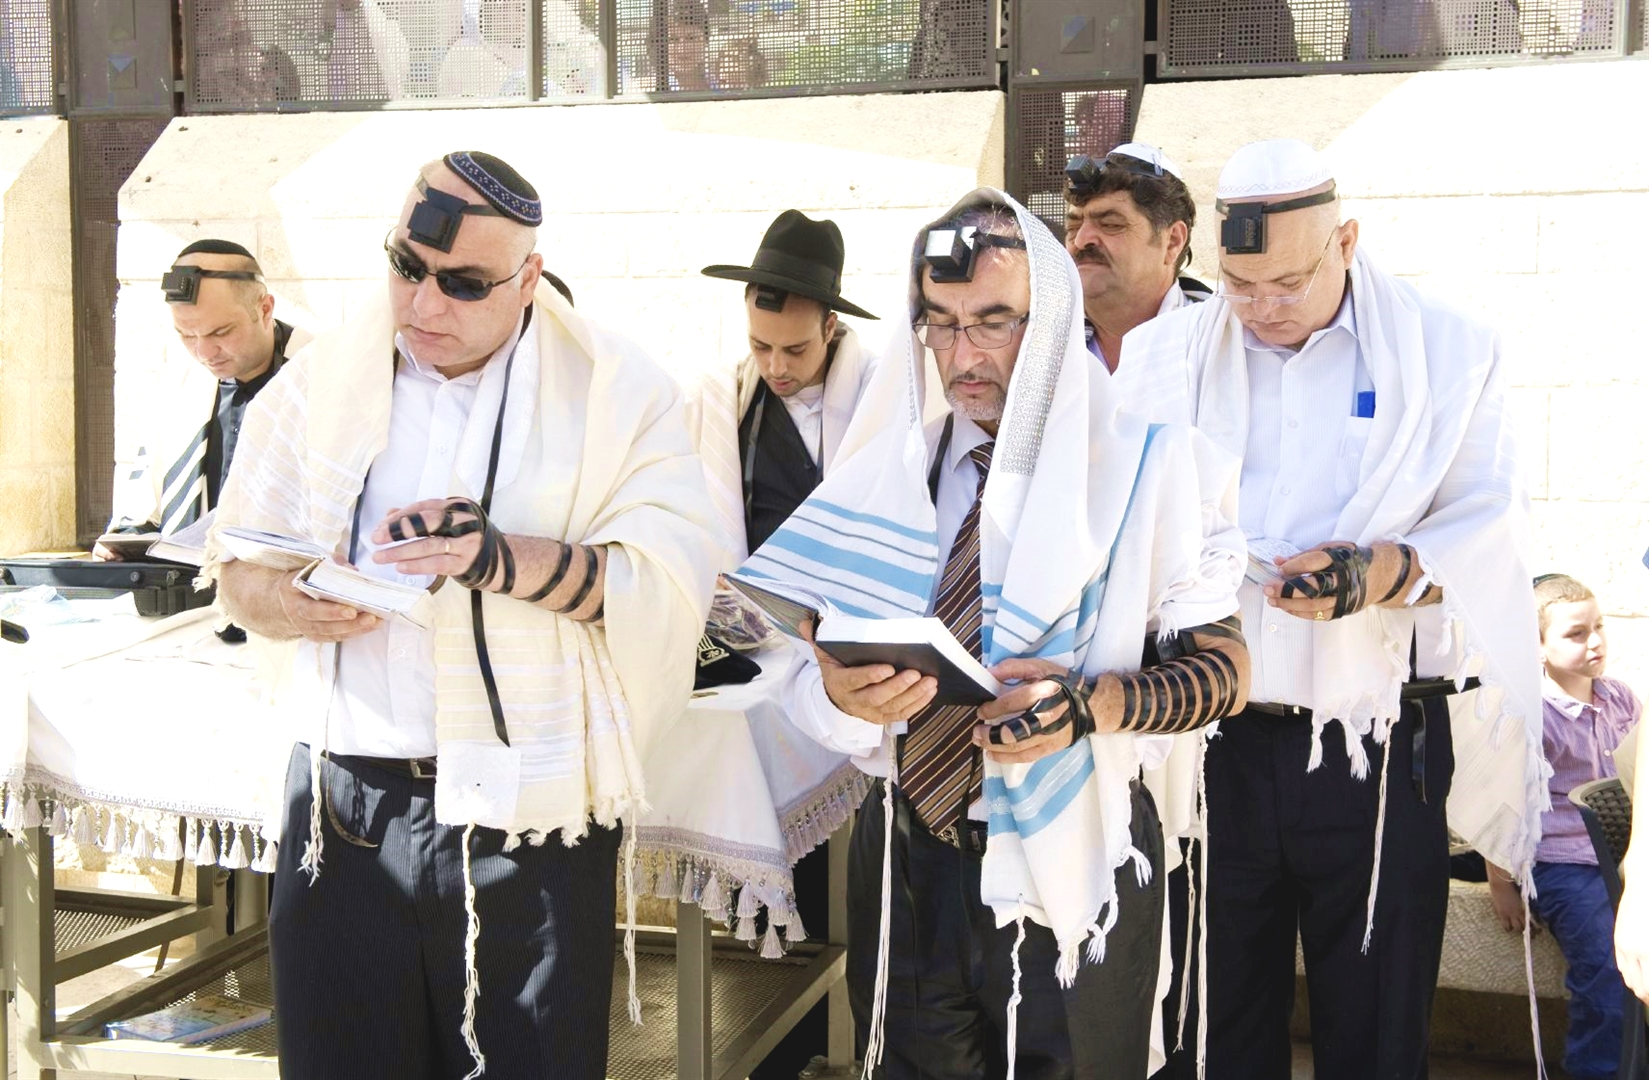 The Significance of the Jewish Prayer Shawl | Messianic Bible